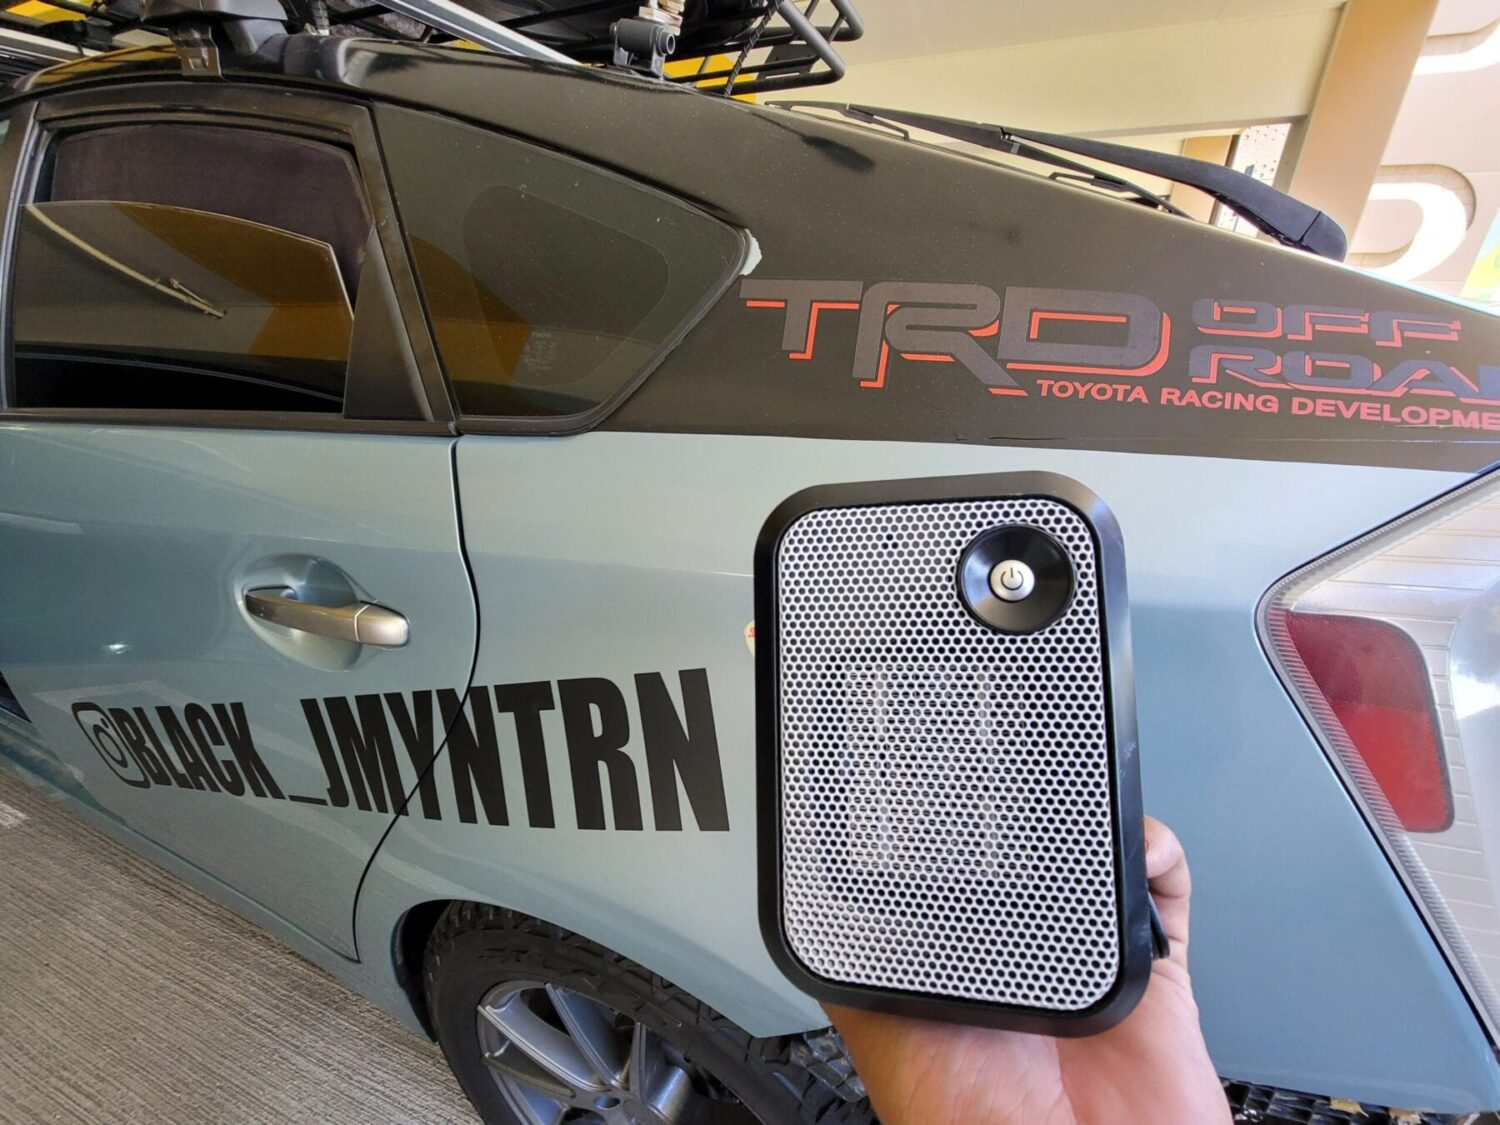 Electric Heater for Camping in a Toyota Prius with Lift Kit and All Terrain Tires